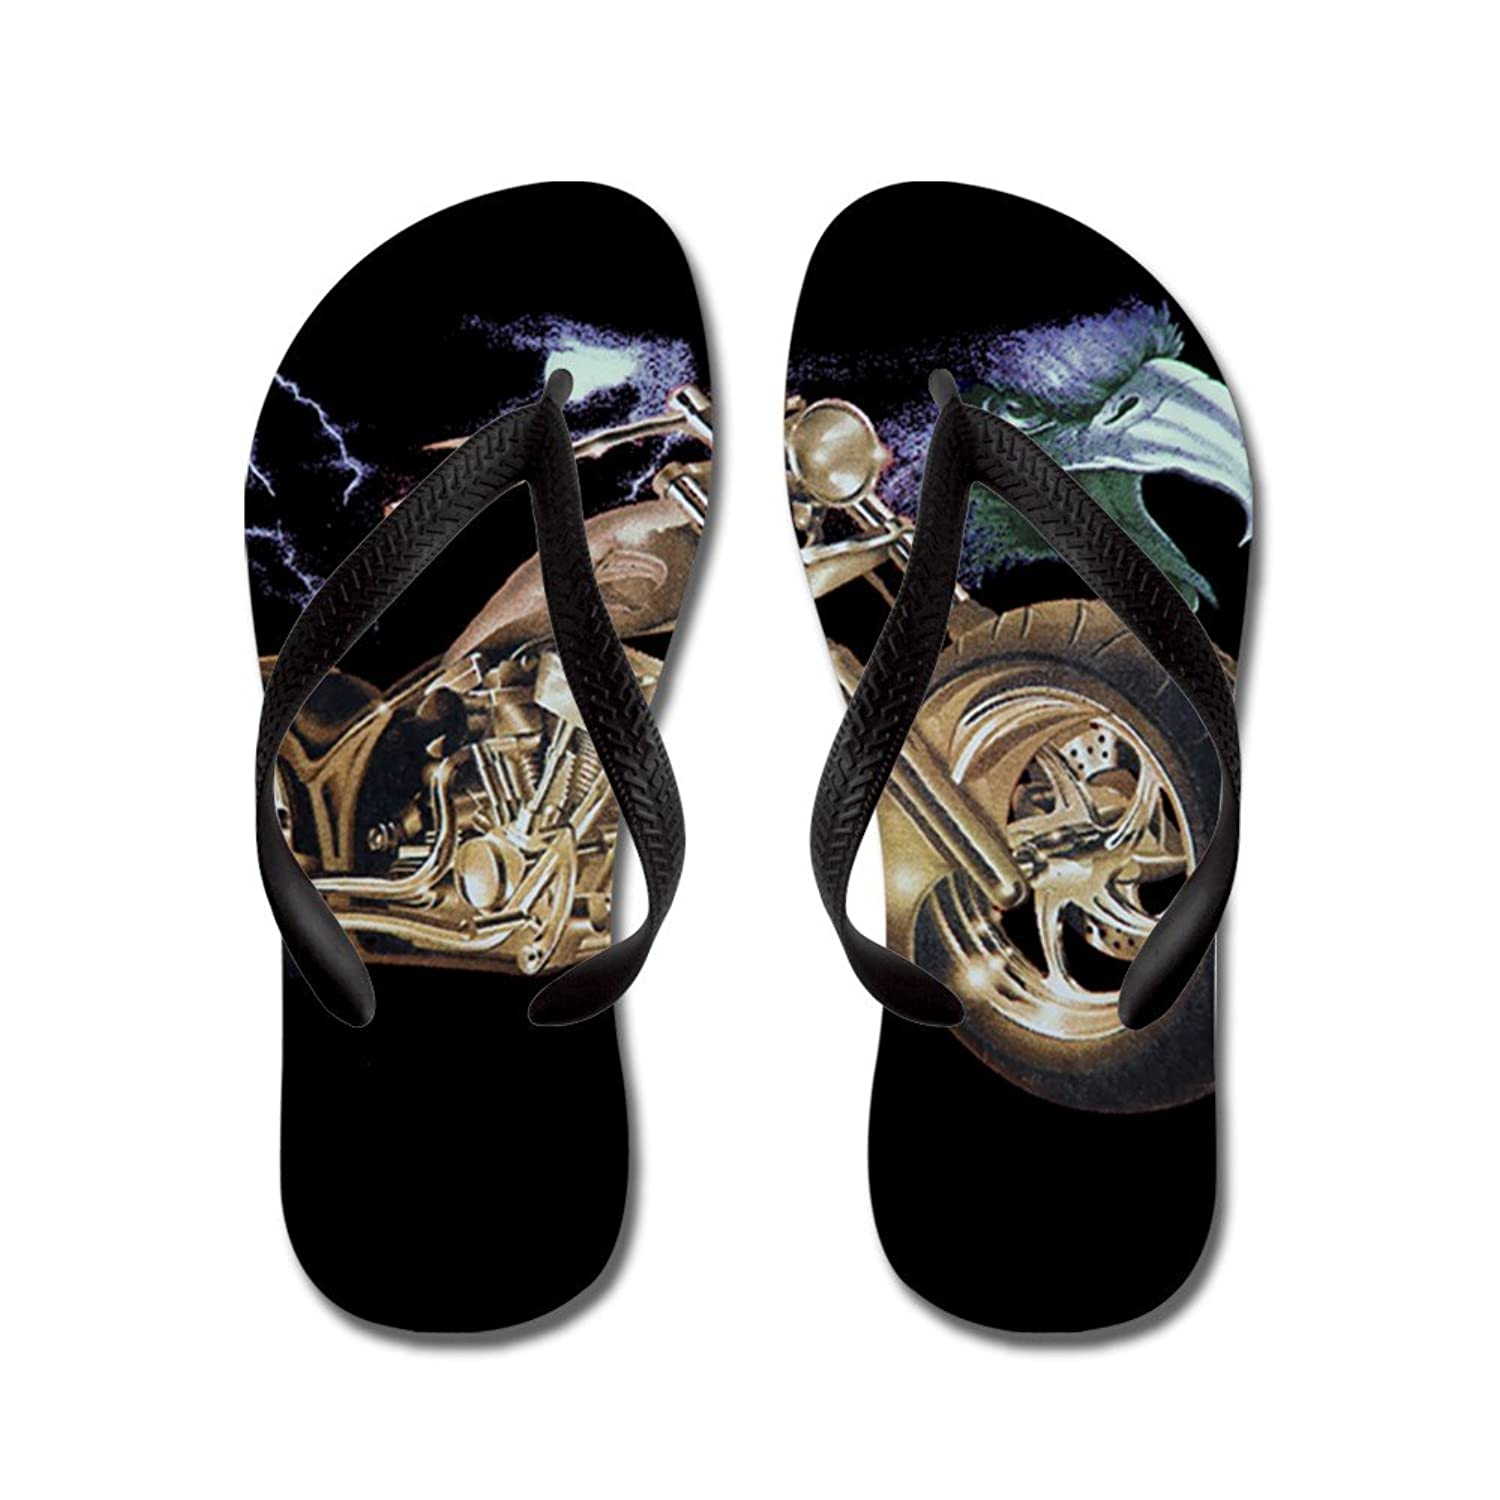 0a9a2f3647654 Royal Lion Men s Eagle Lightning and Motorcycle Rubber Flip Flops Sandals  free shipping